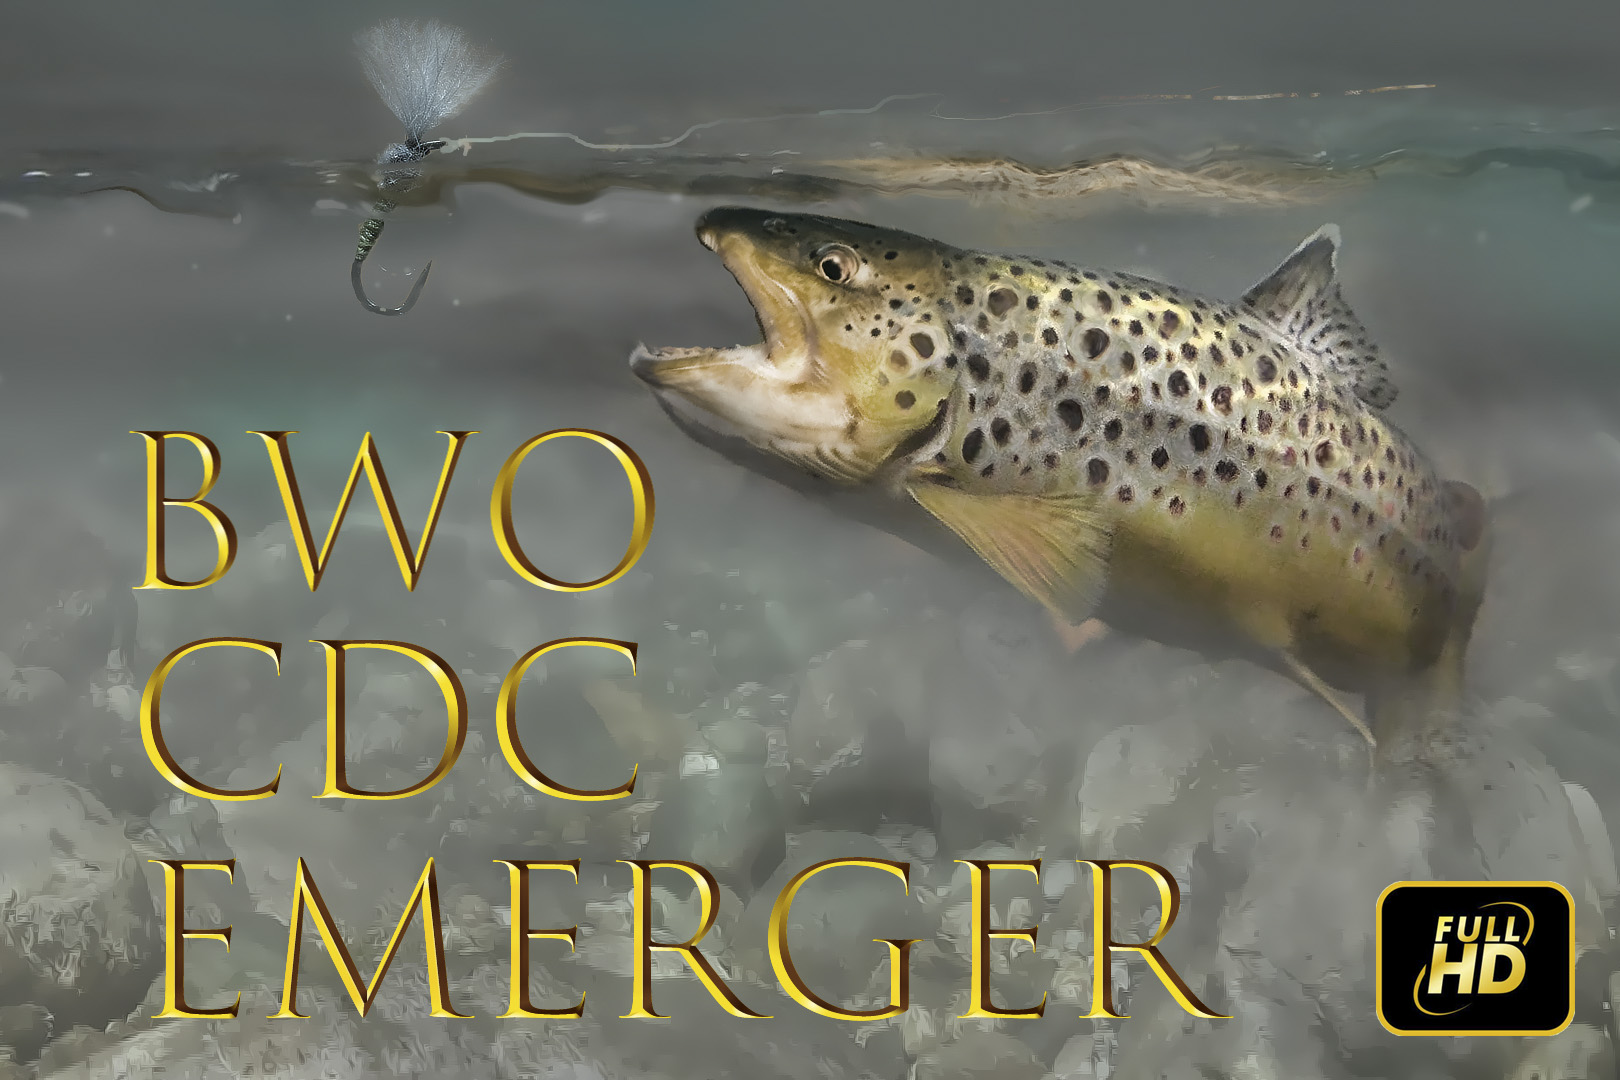 BWO CDC Emerger